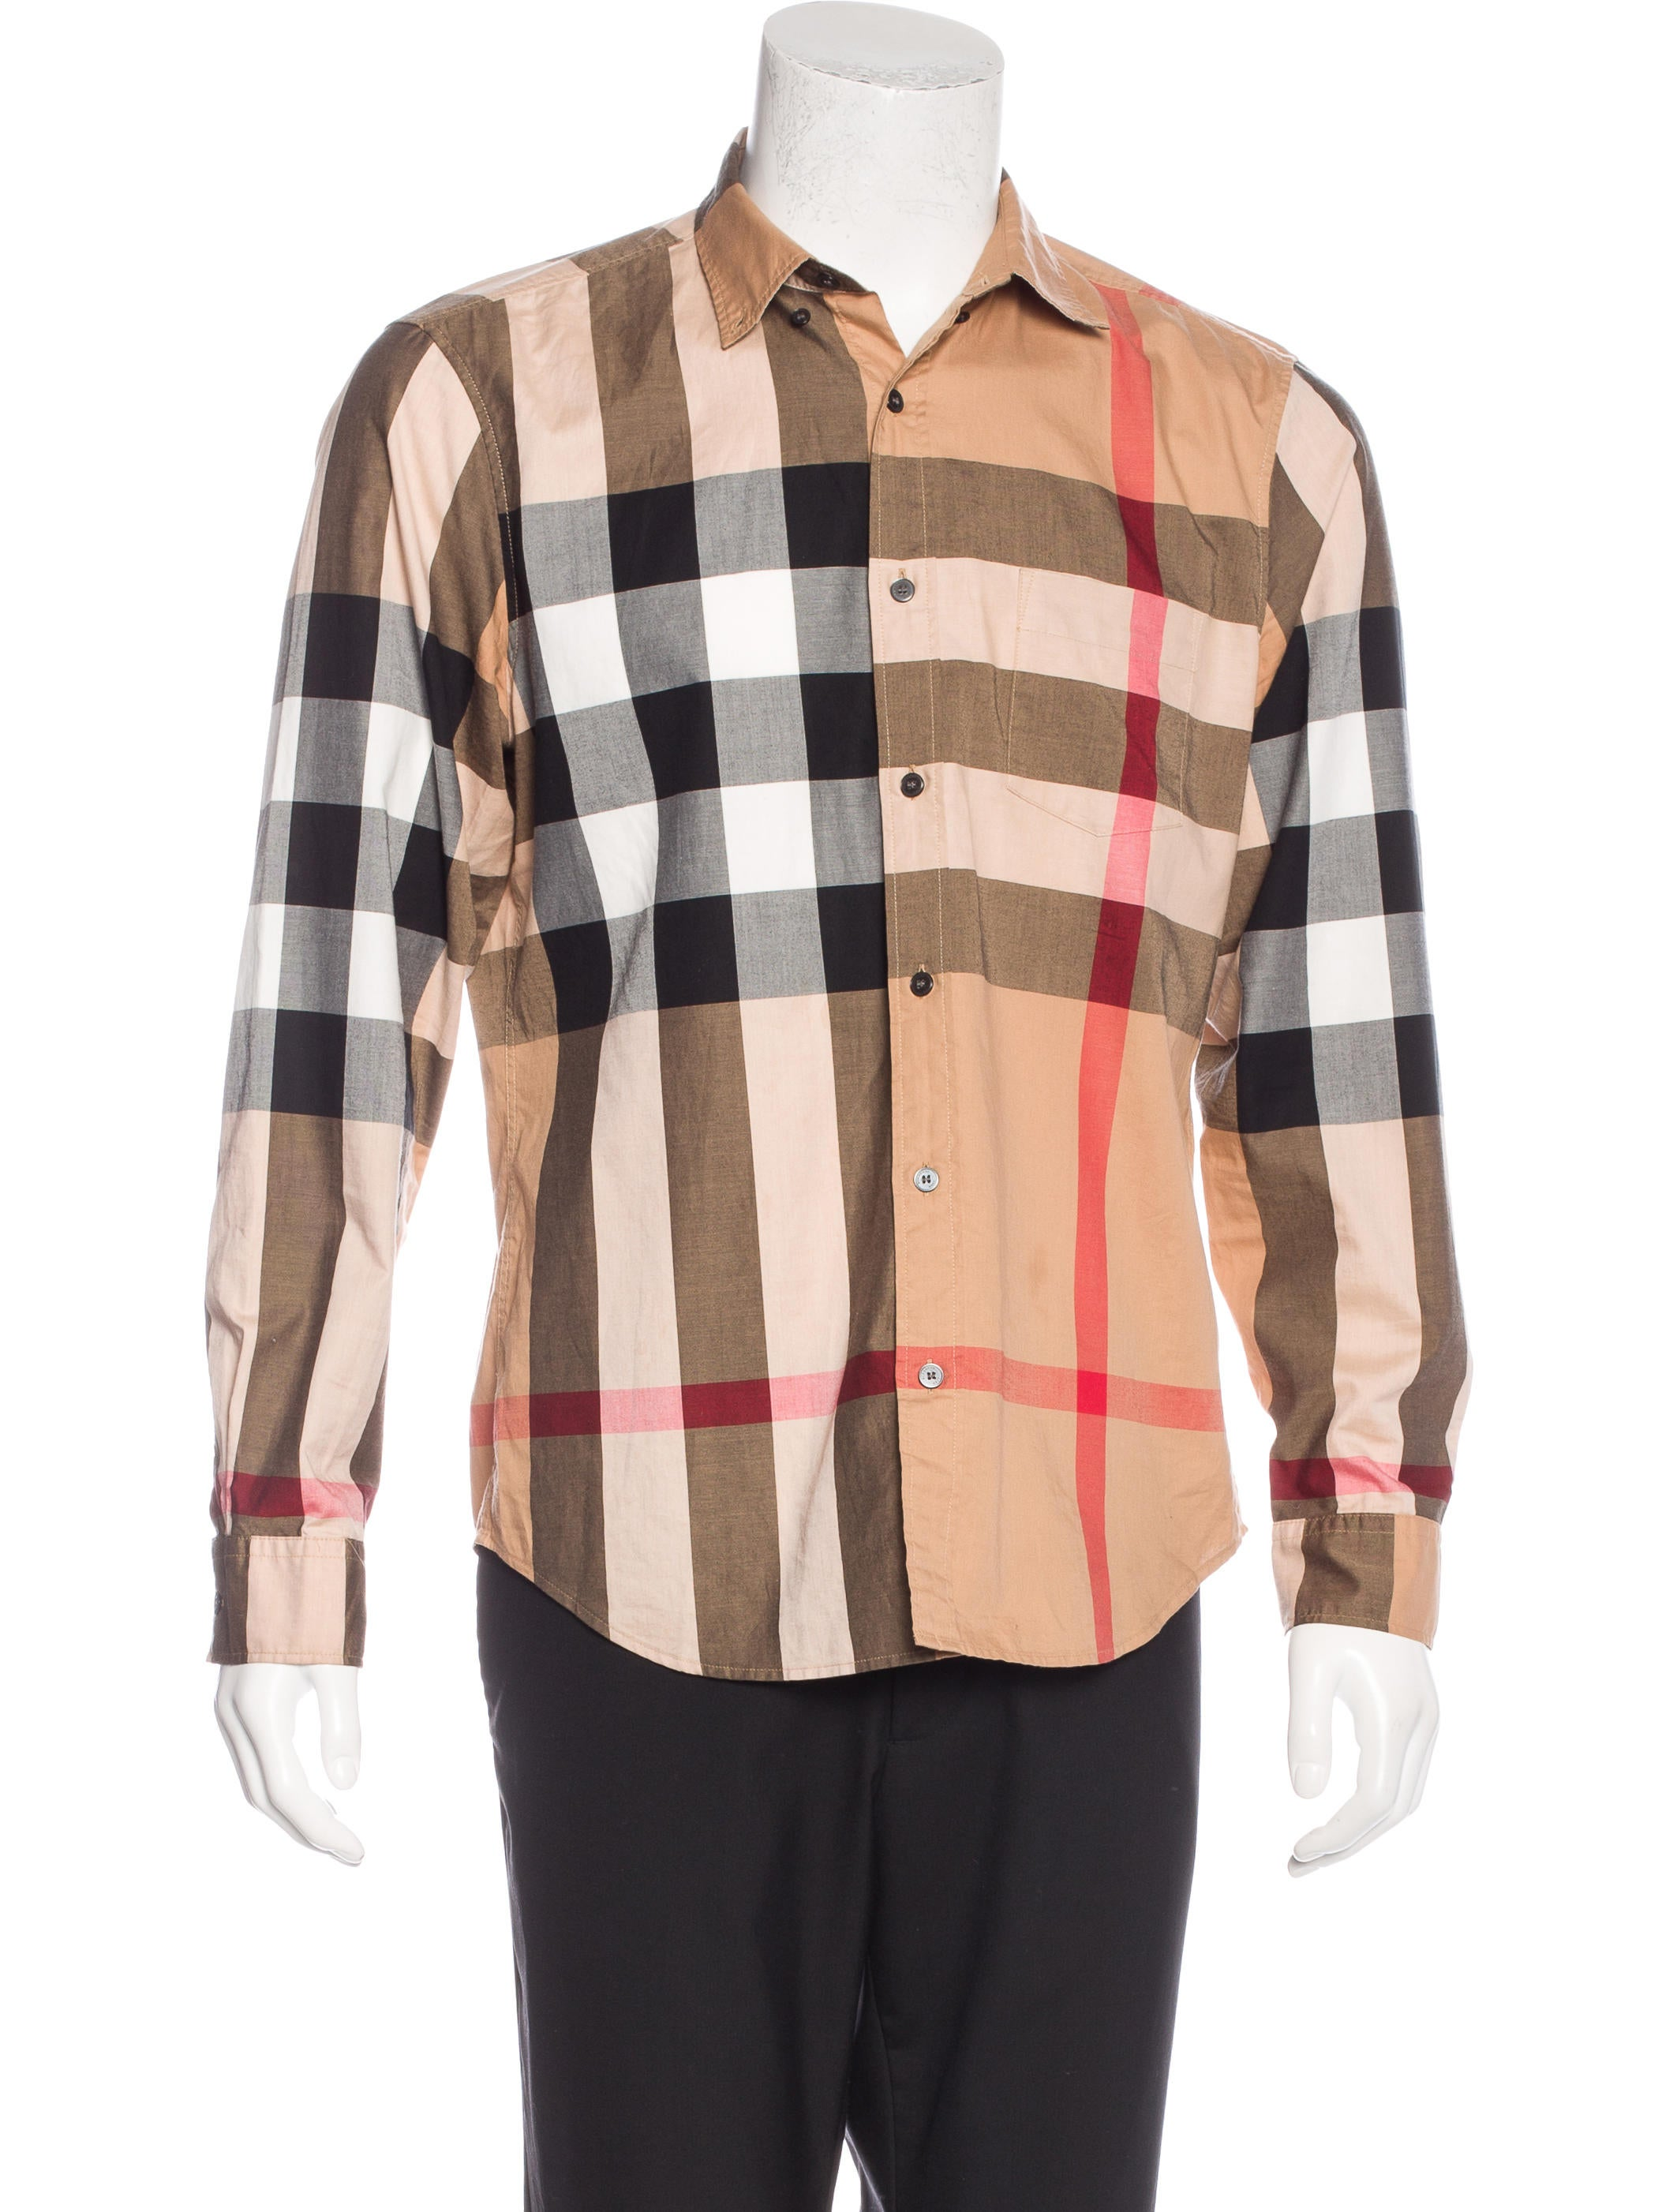 Burberry brit exploded check shirt clothing bbr27042 for Burberry brit checked shirt